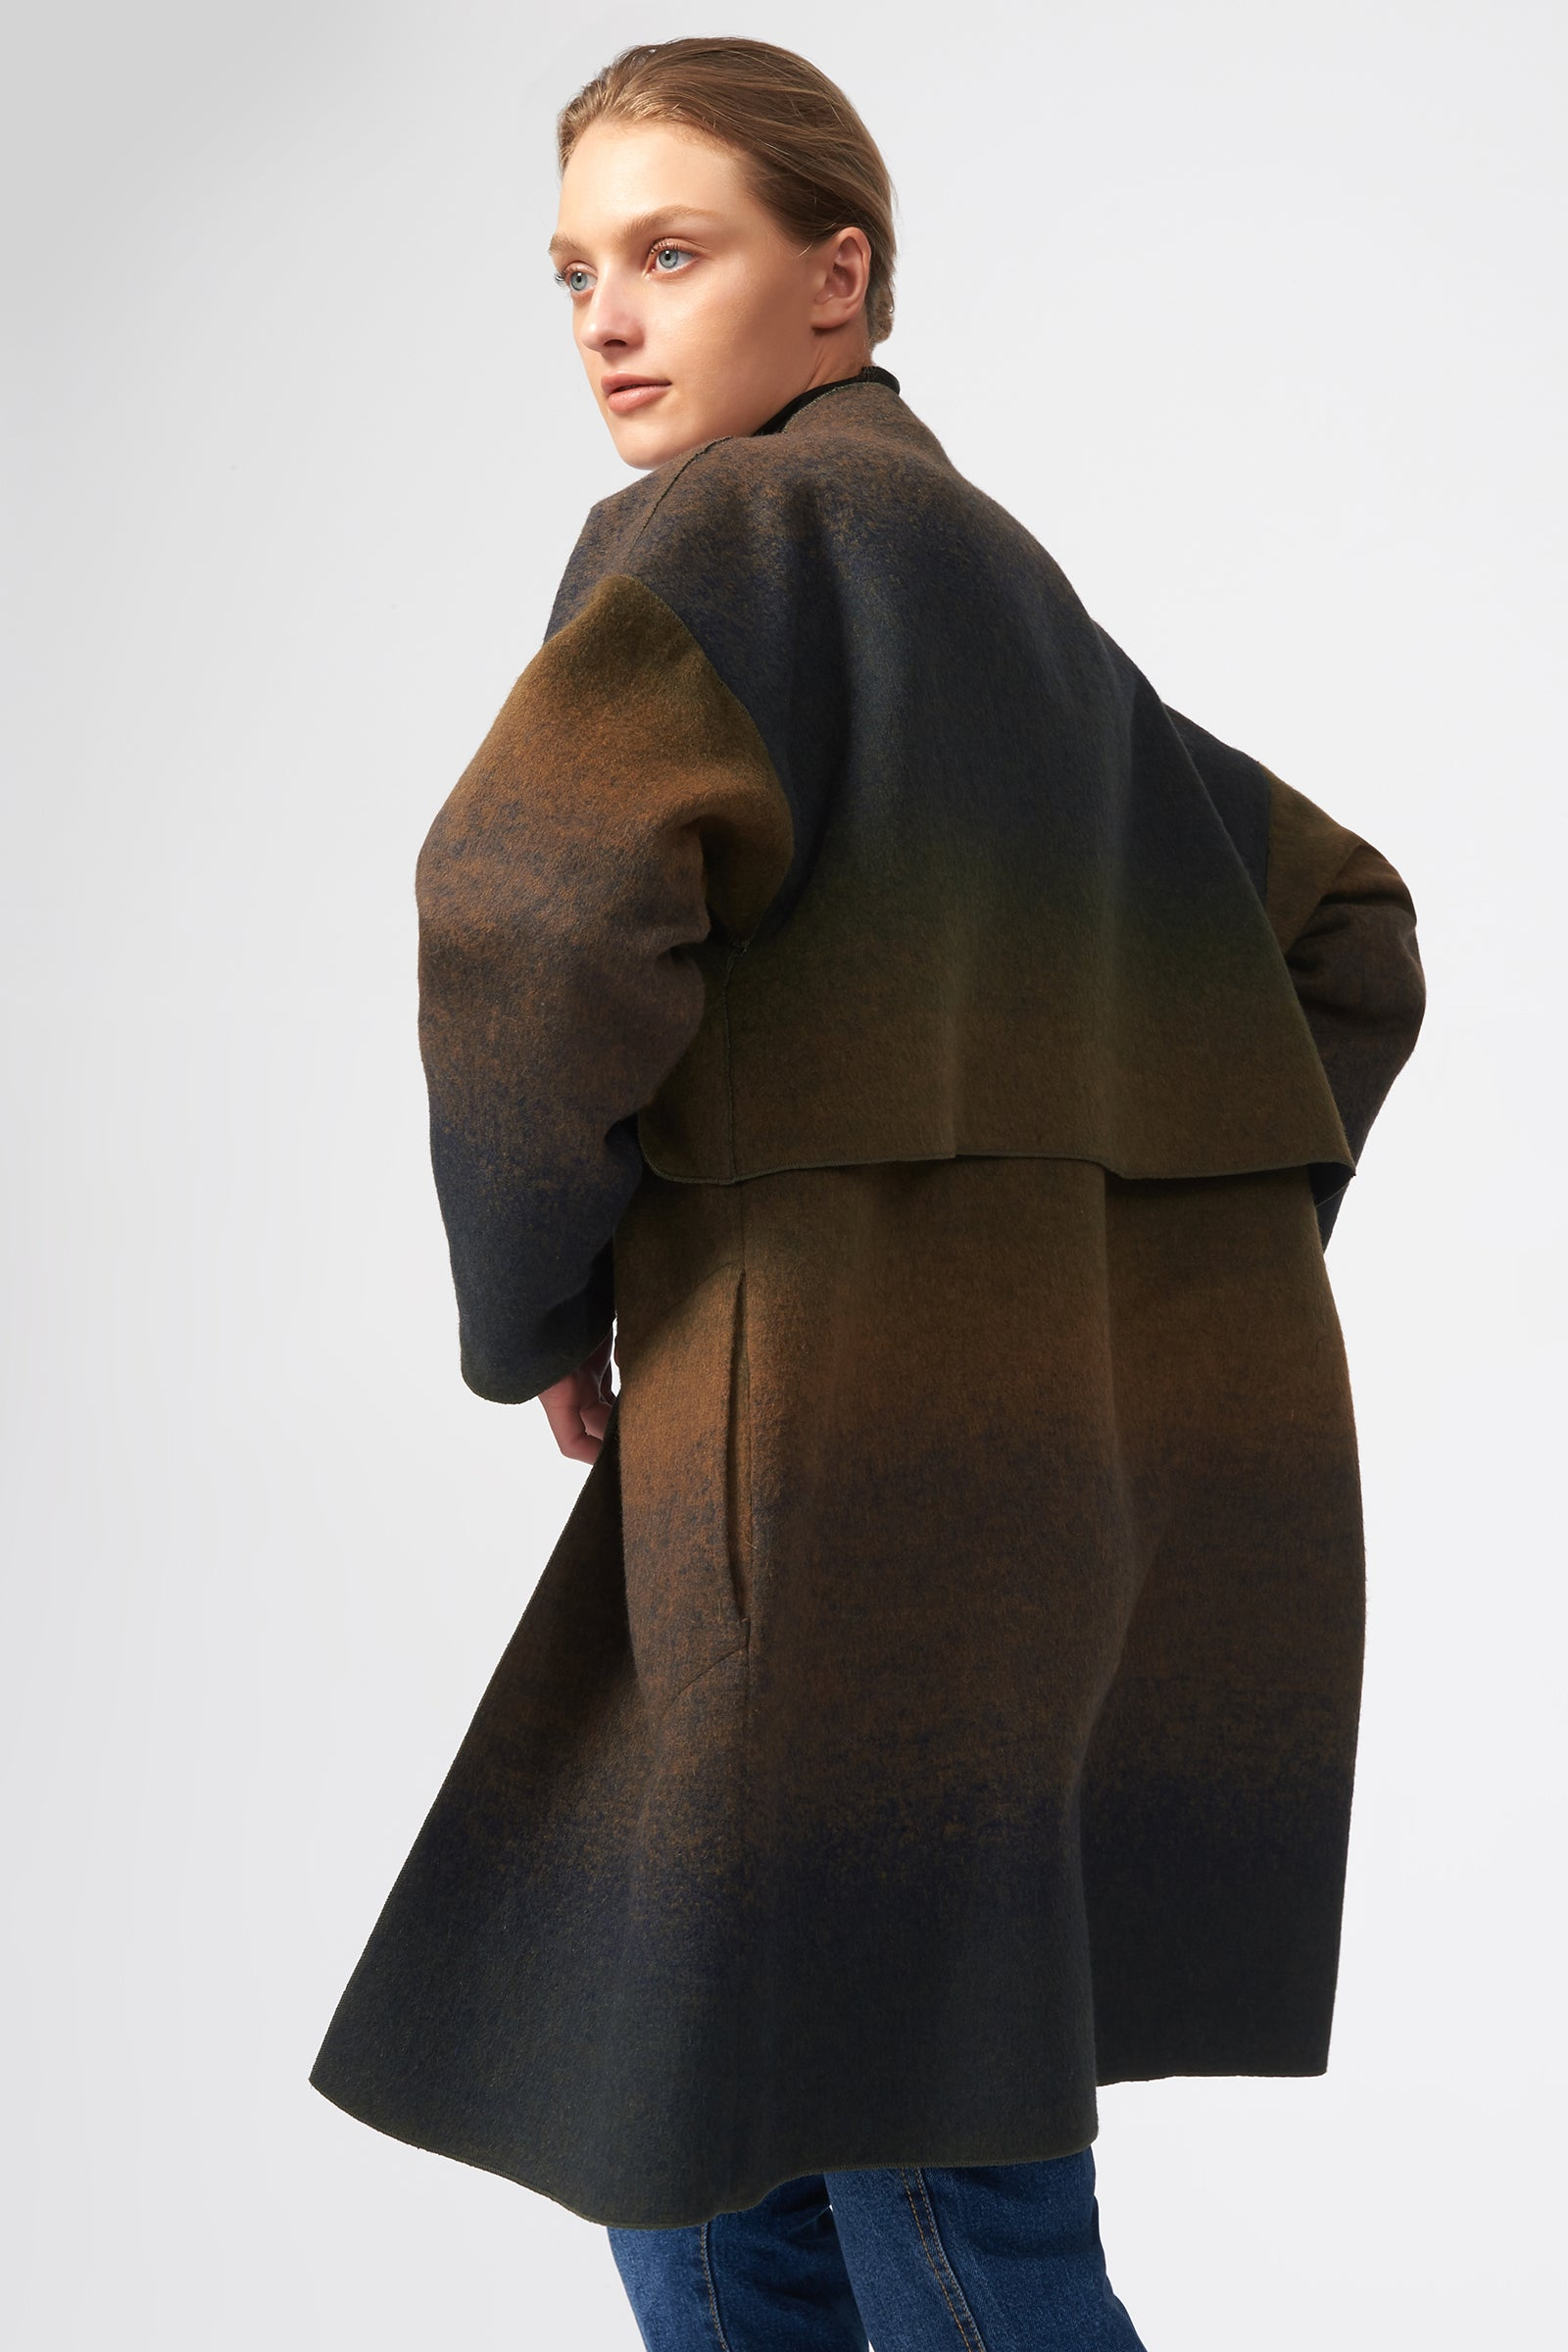 Kal Rieman Cape Kimono Coat in Italian Ombre on Model Front View